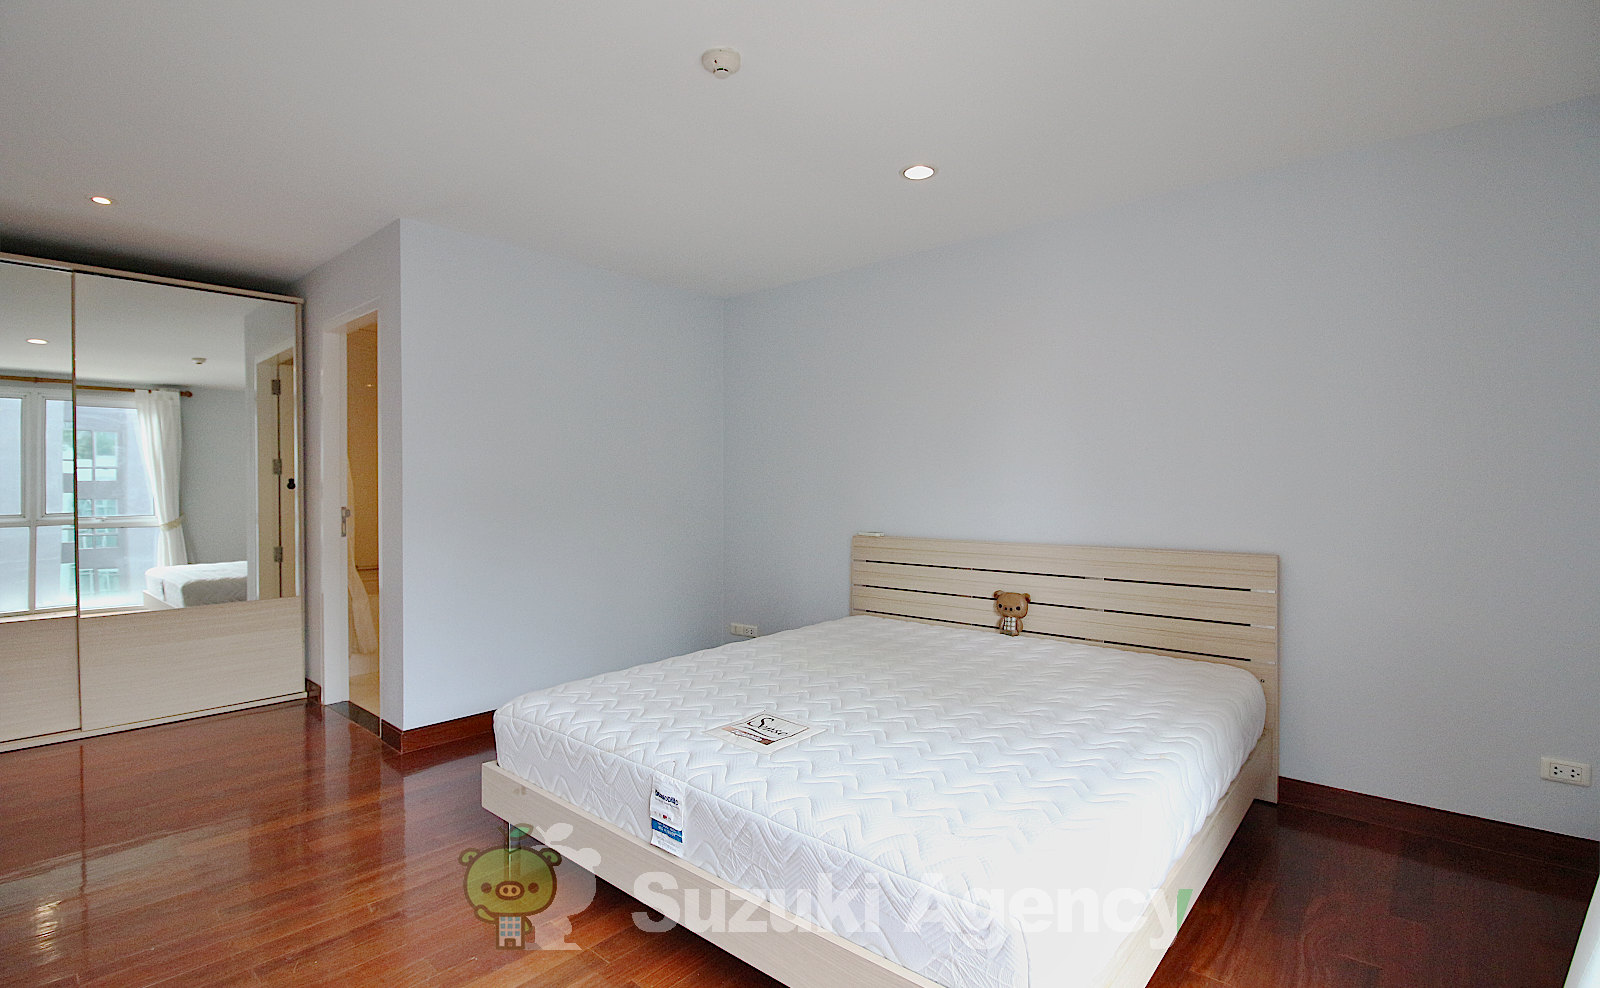 Urbana Sukhumvit 15:2Bed Room Photos No.7